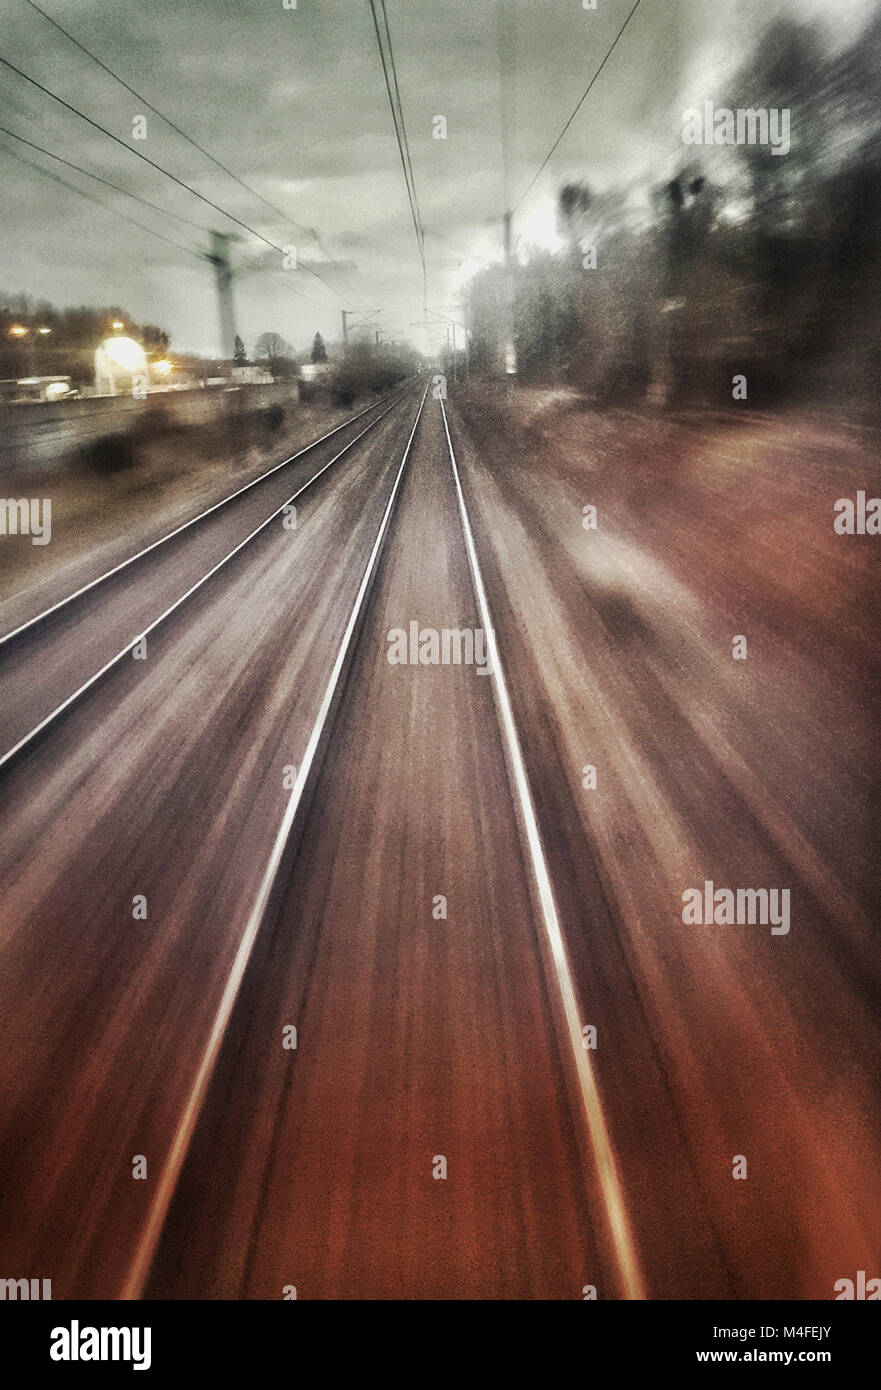 Abstract photo of railroad tracks, France, Europe - Stock Image